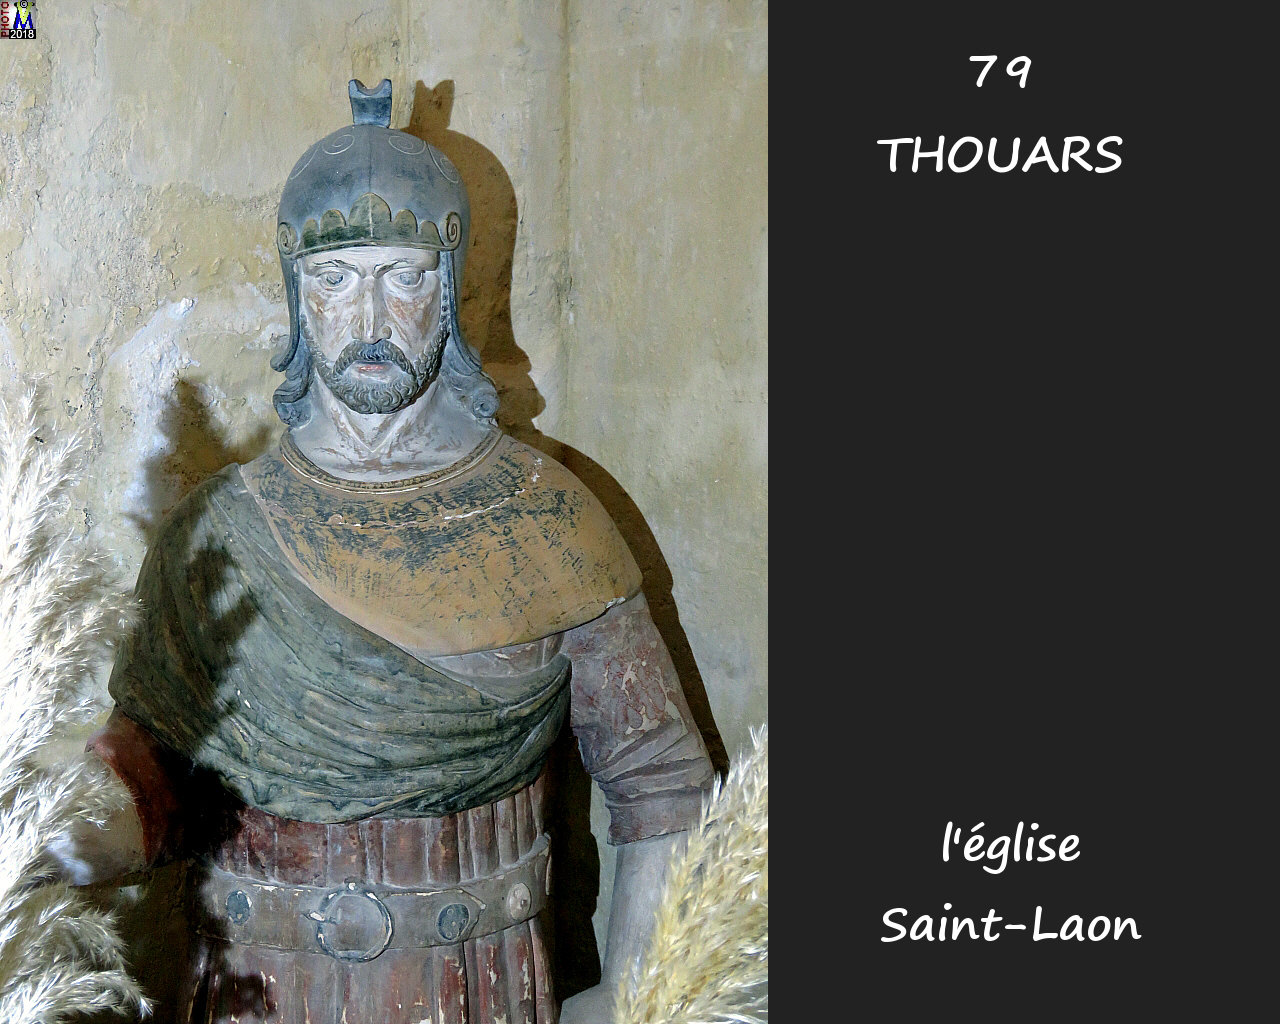 79THOUARS_egliseSL_1166.jpg